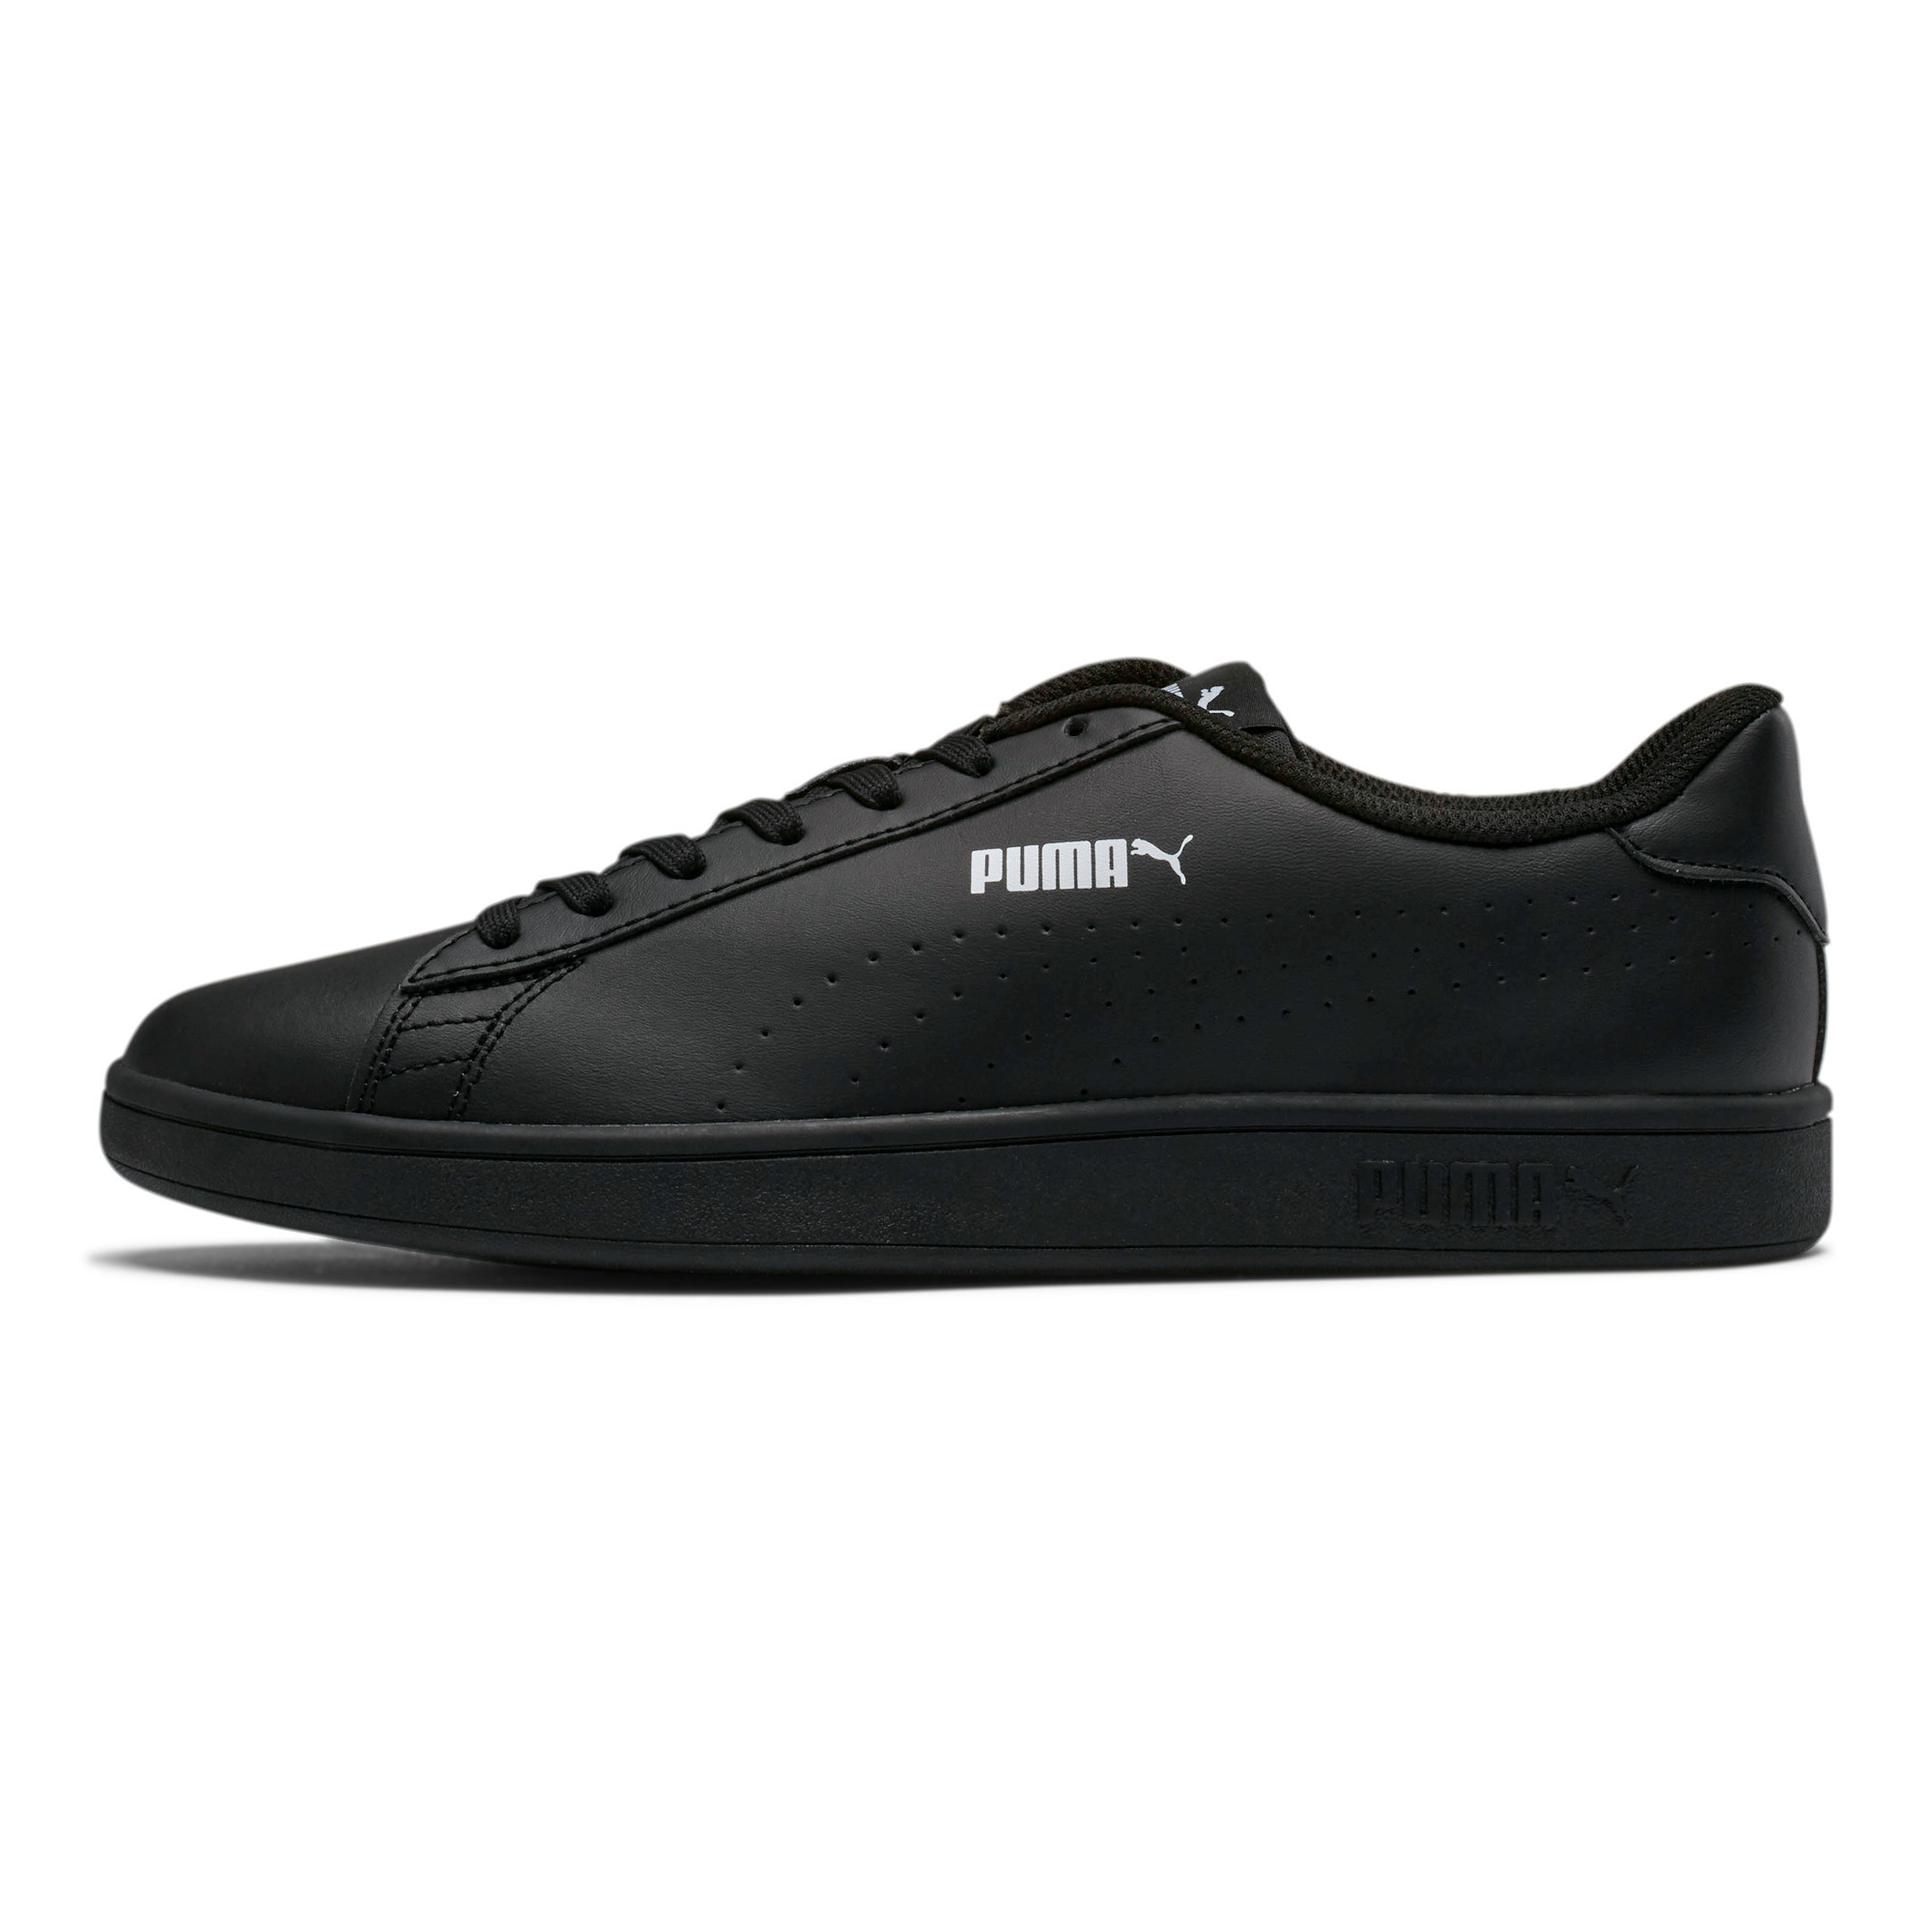 PUMA-PUMA-Smash-v2-Leather-Perf-Sneakers-Men-Shoe-Basics miniatura 10